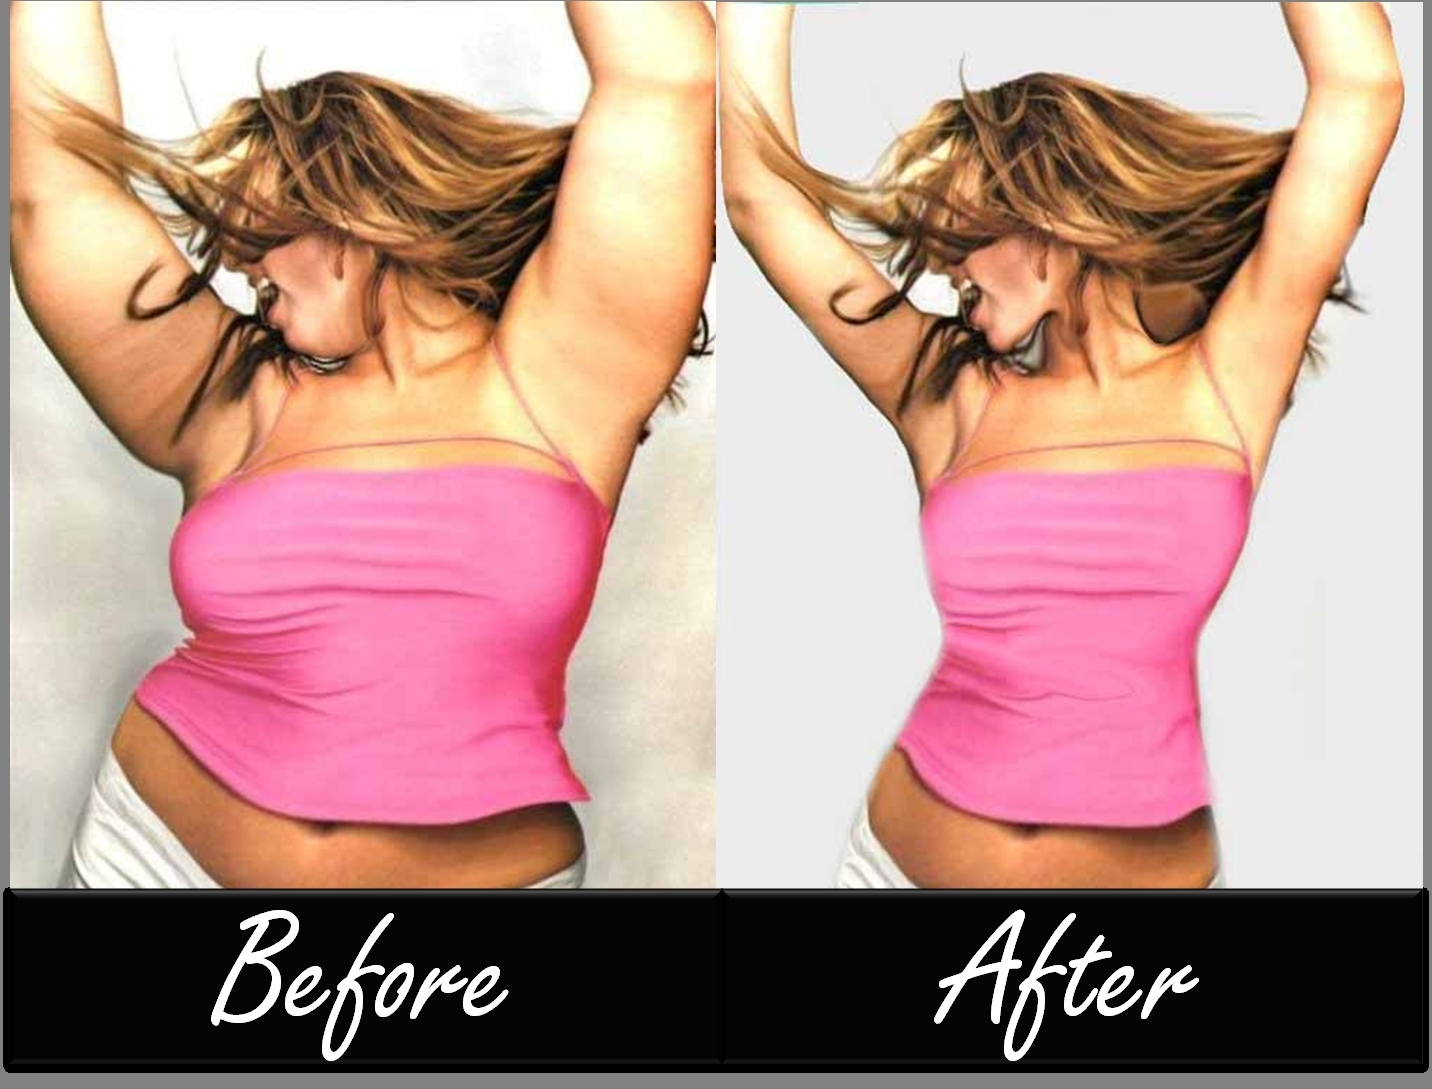 Photoshop Extreme (Photoshop) Makeover